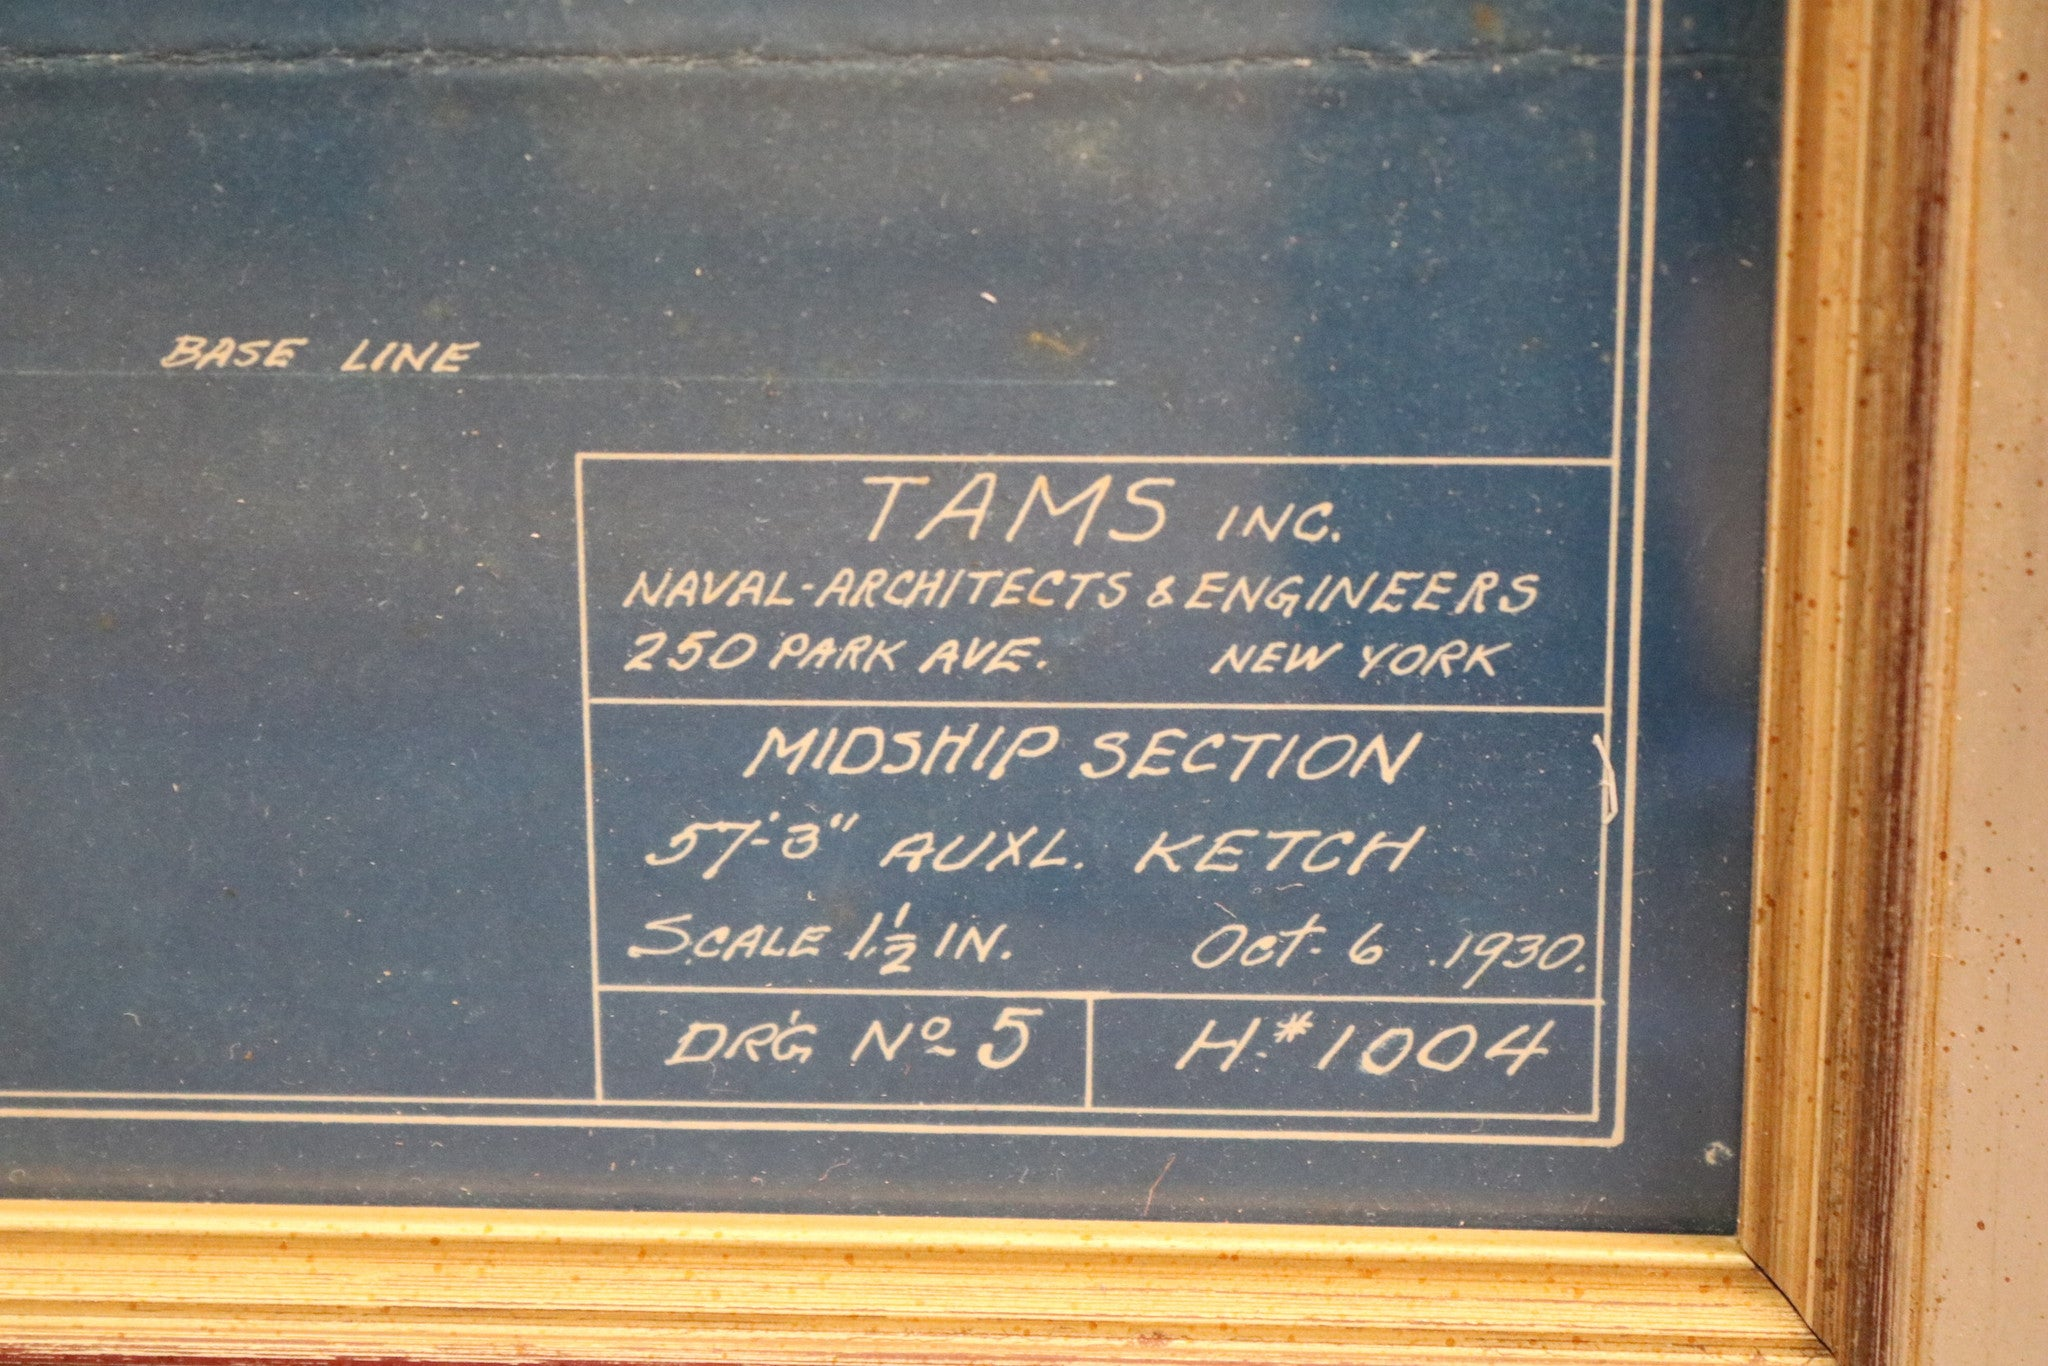 1930 yacht blueprint by tams of nyc lannan gallery 1930 yacht blueprint by tams of nyc malvernweather Image collections